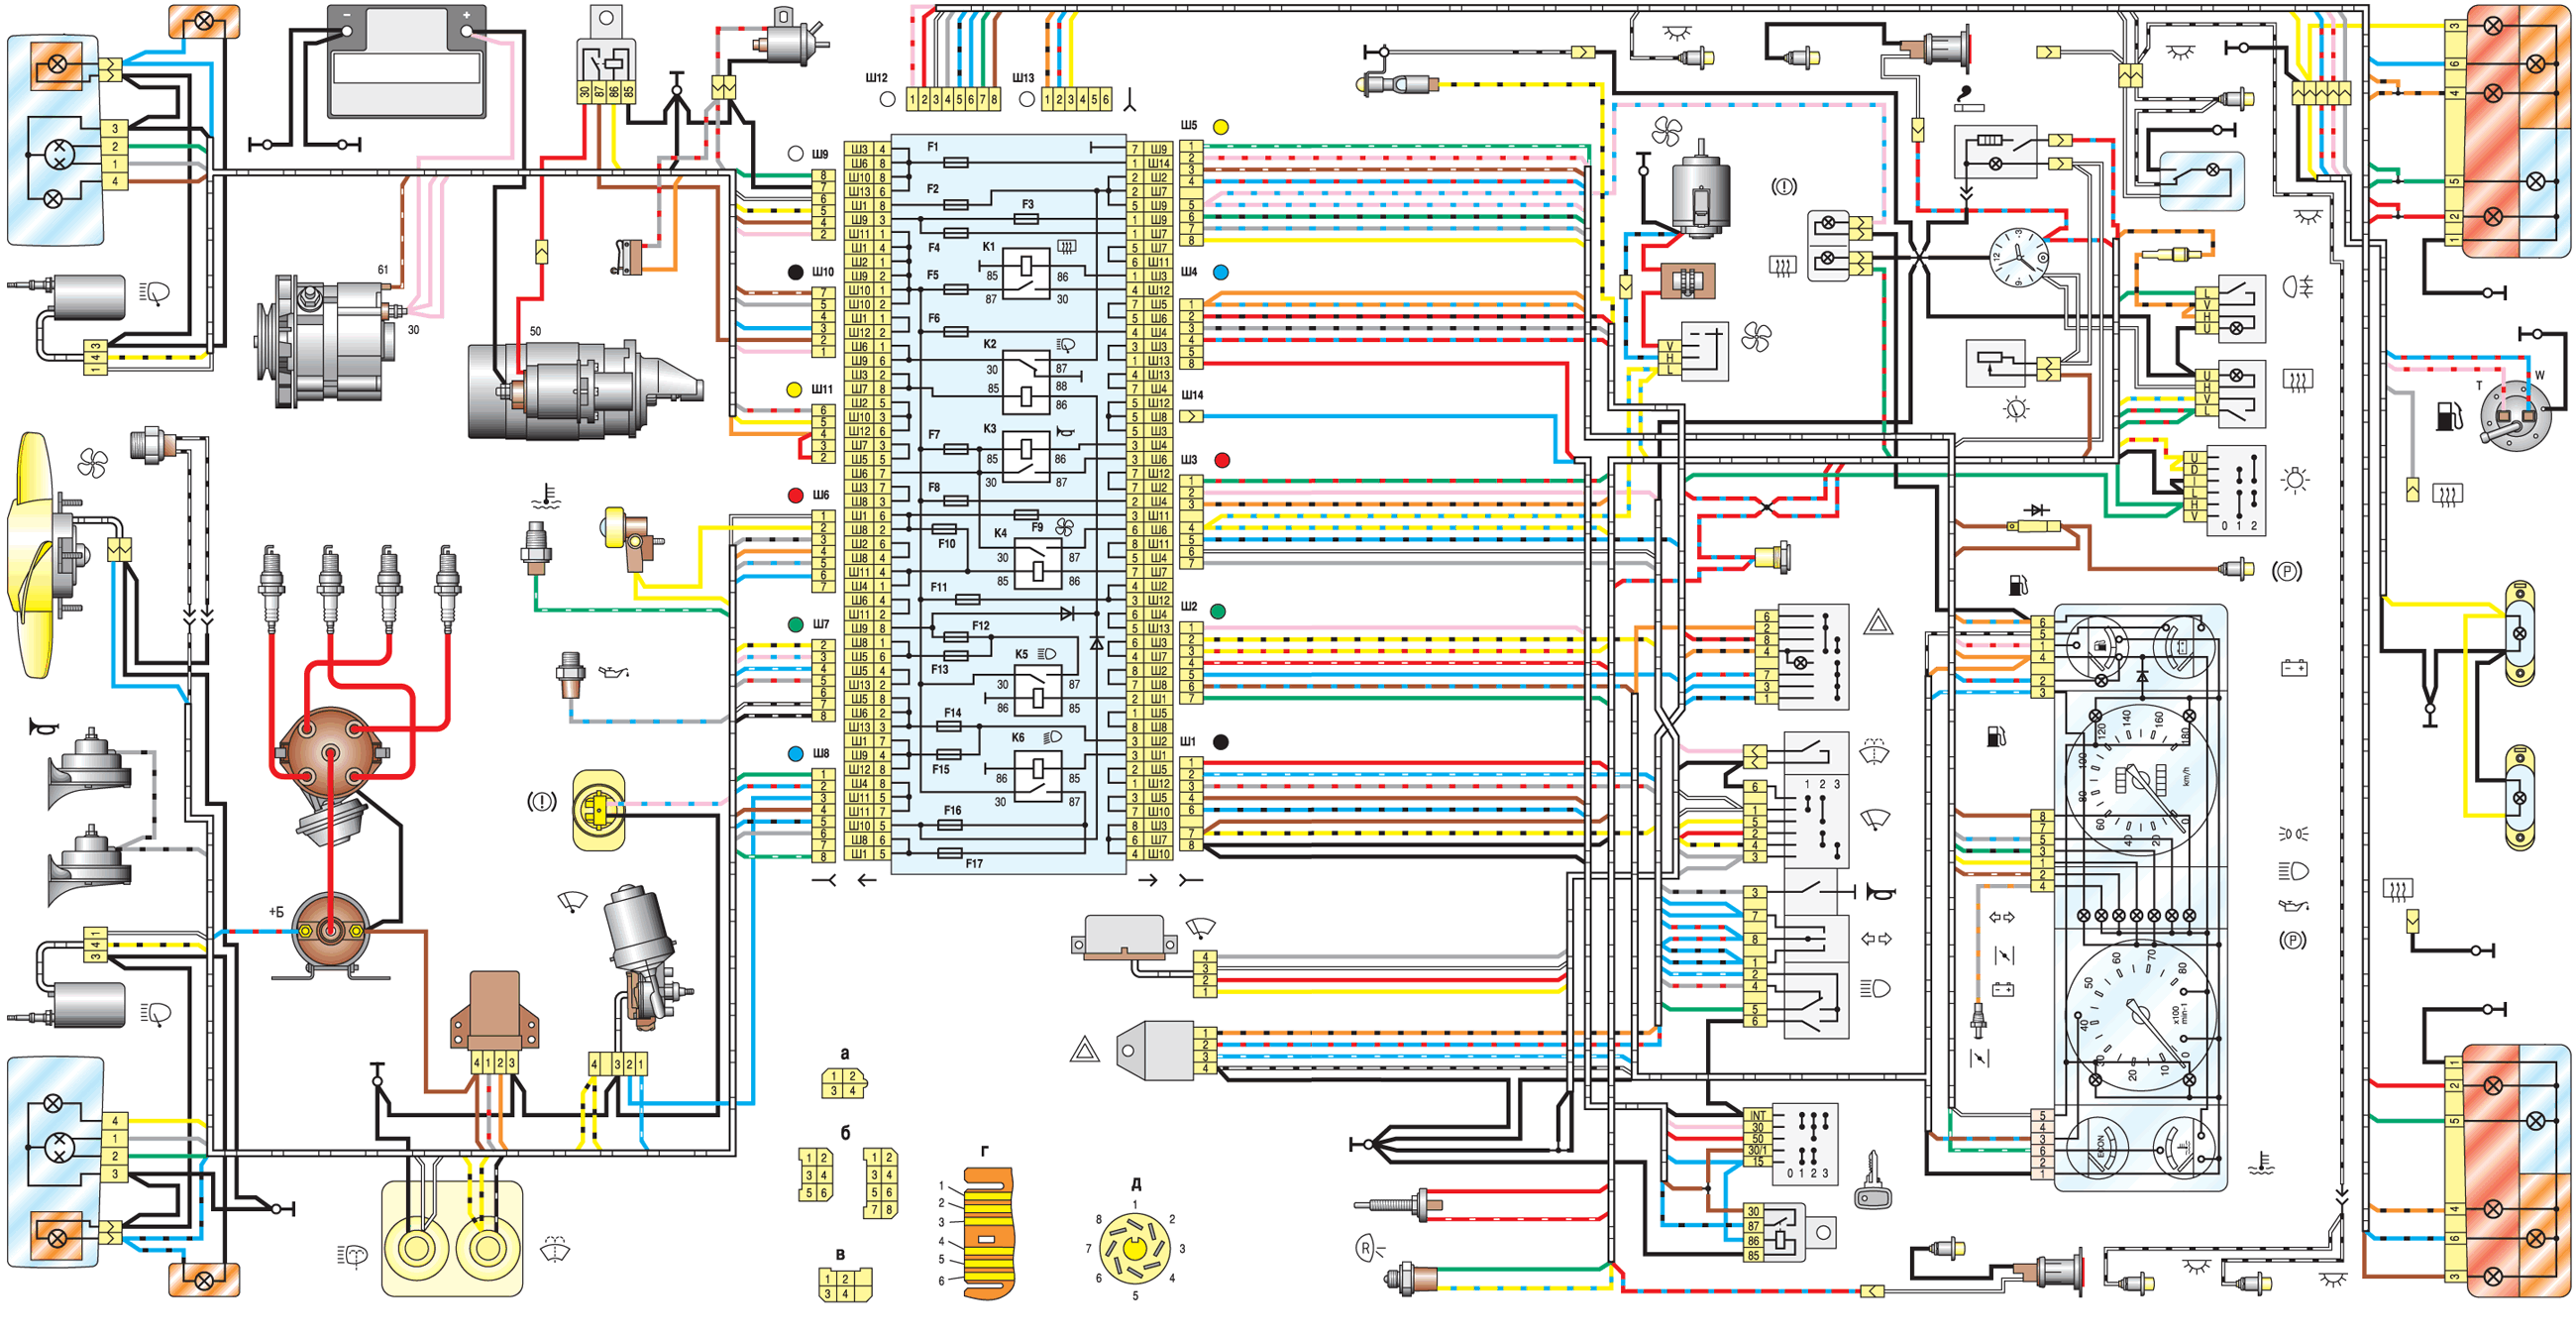 VAZ 2107 Electric Diagram.png.